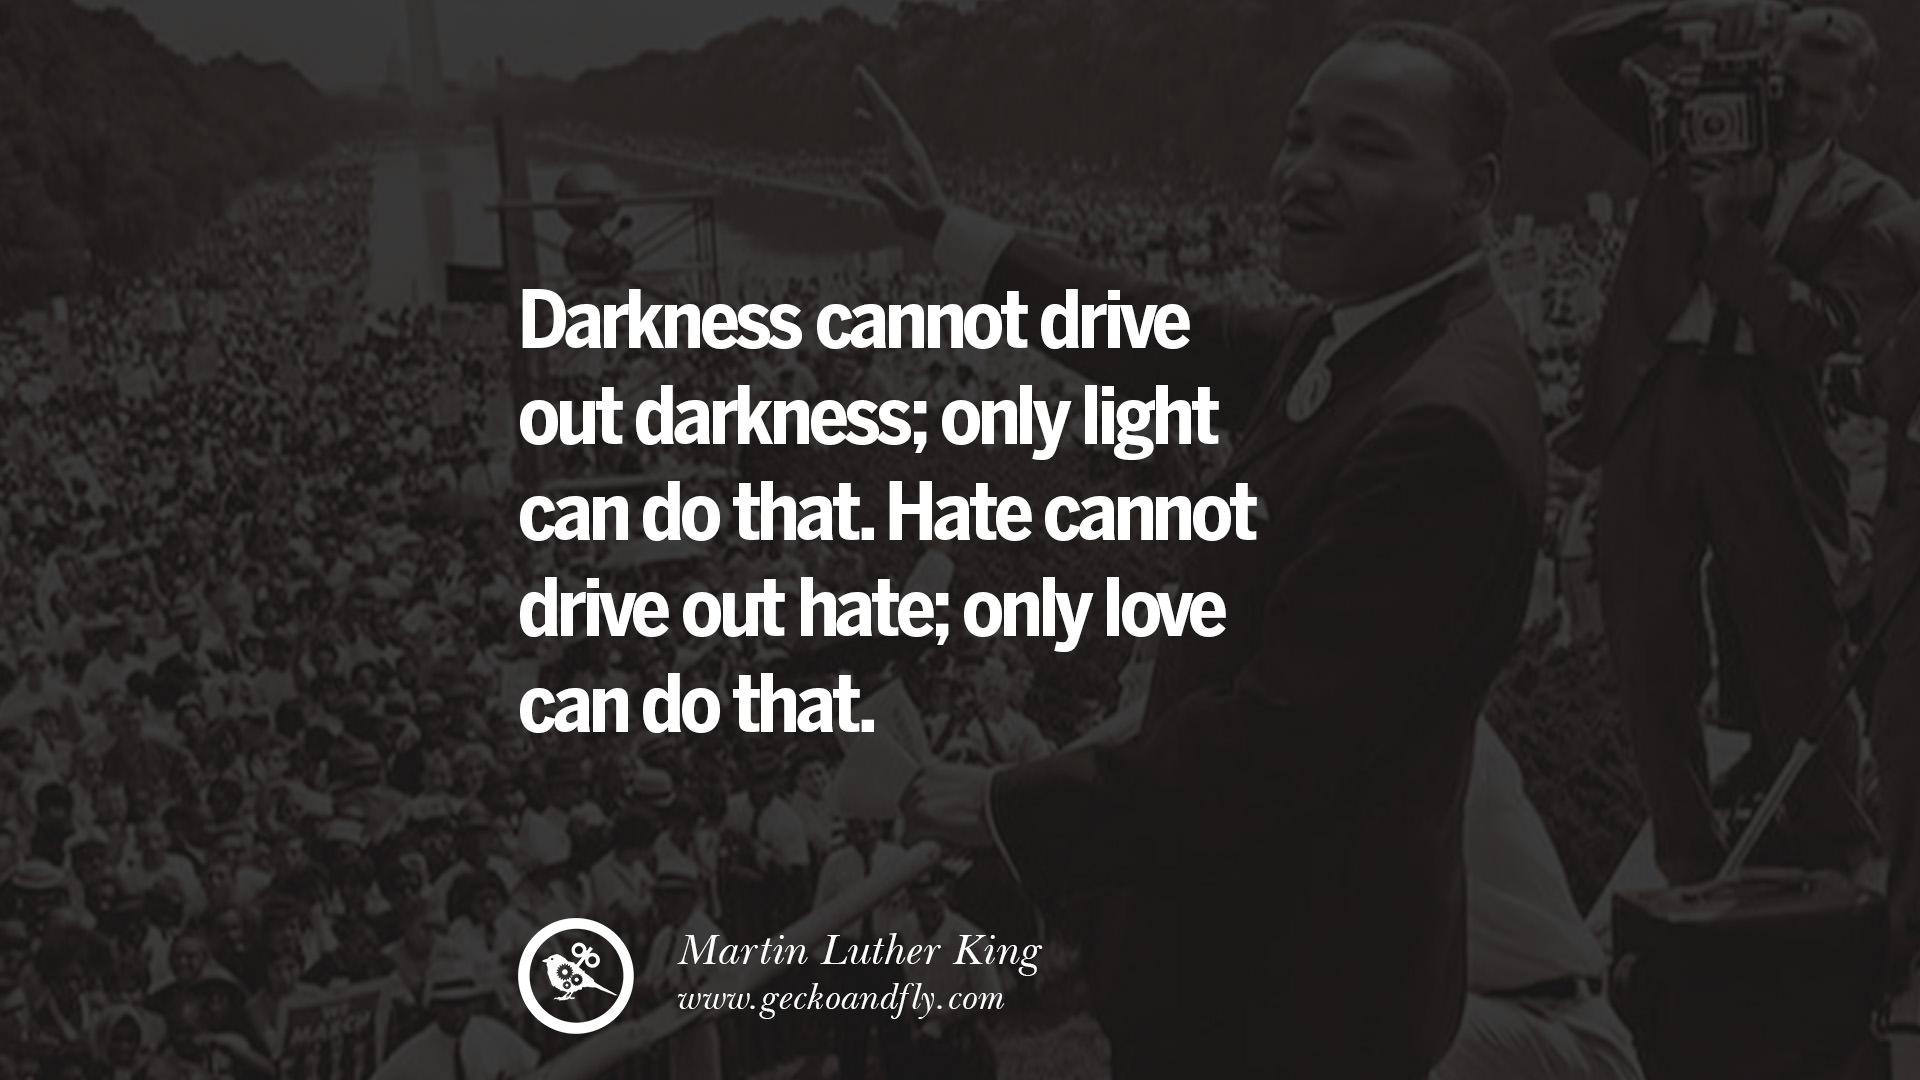 Powerful Love Quotes 30 Powerful Martin Luther King Jr Quotes On Equality Rights Black